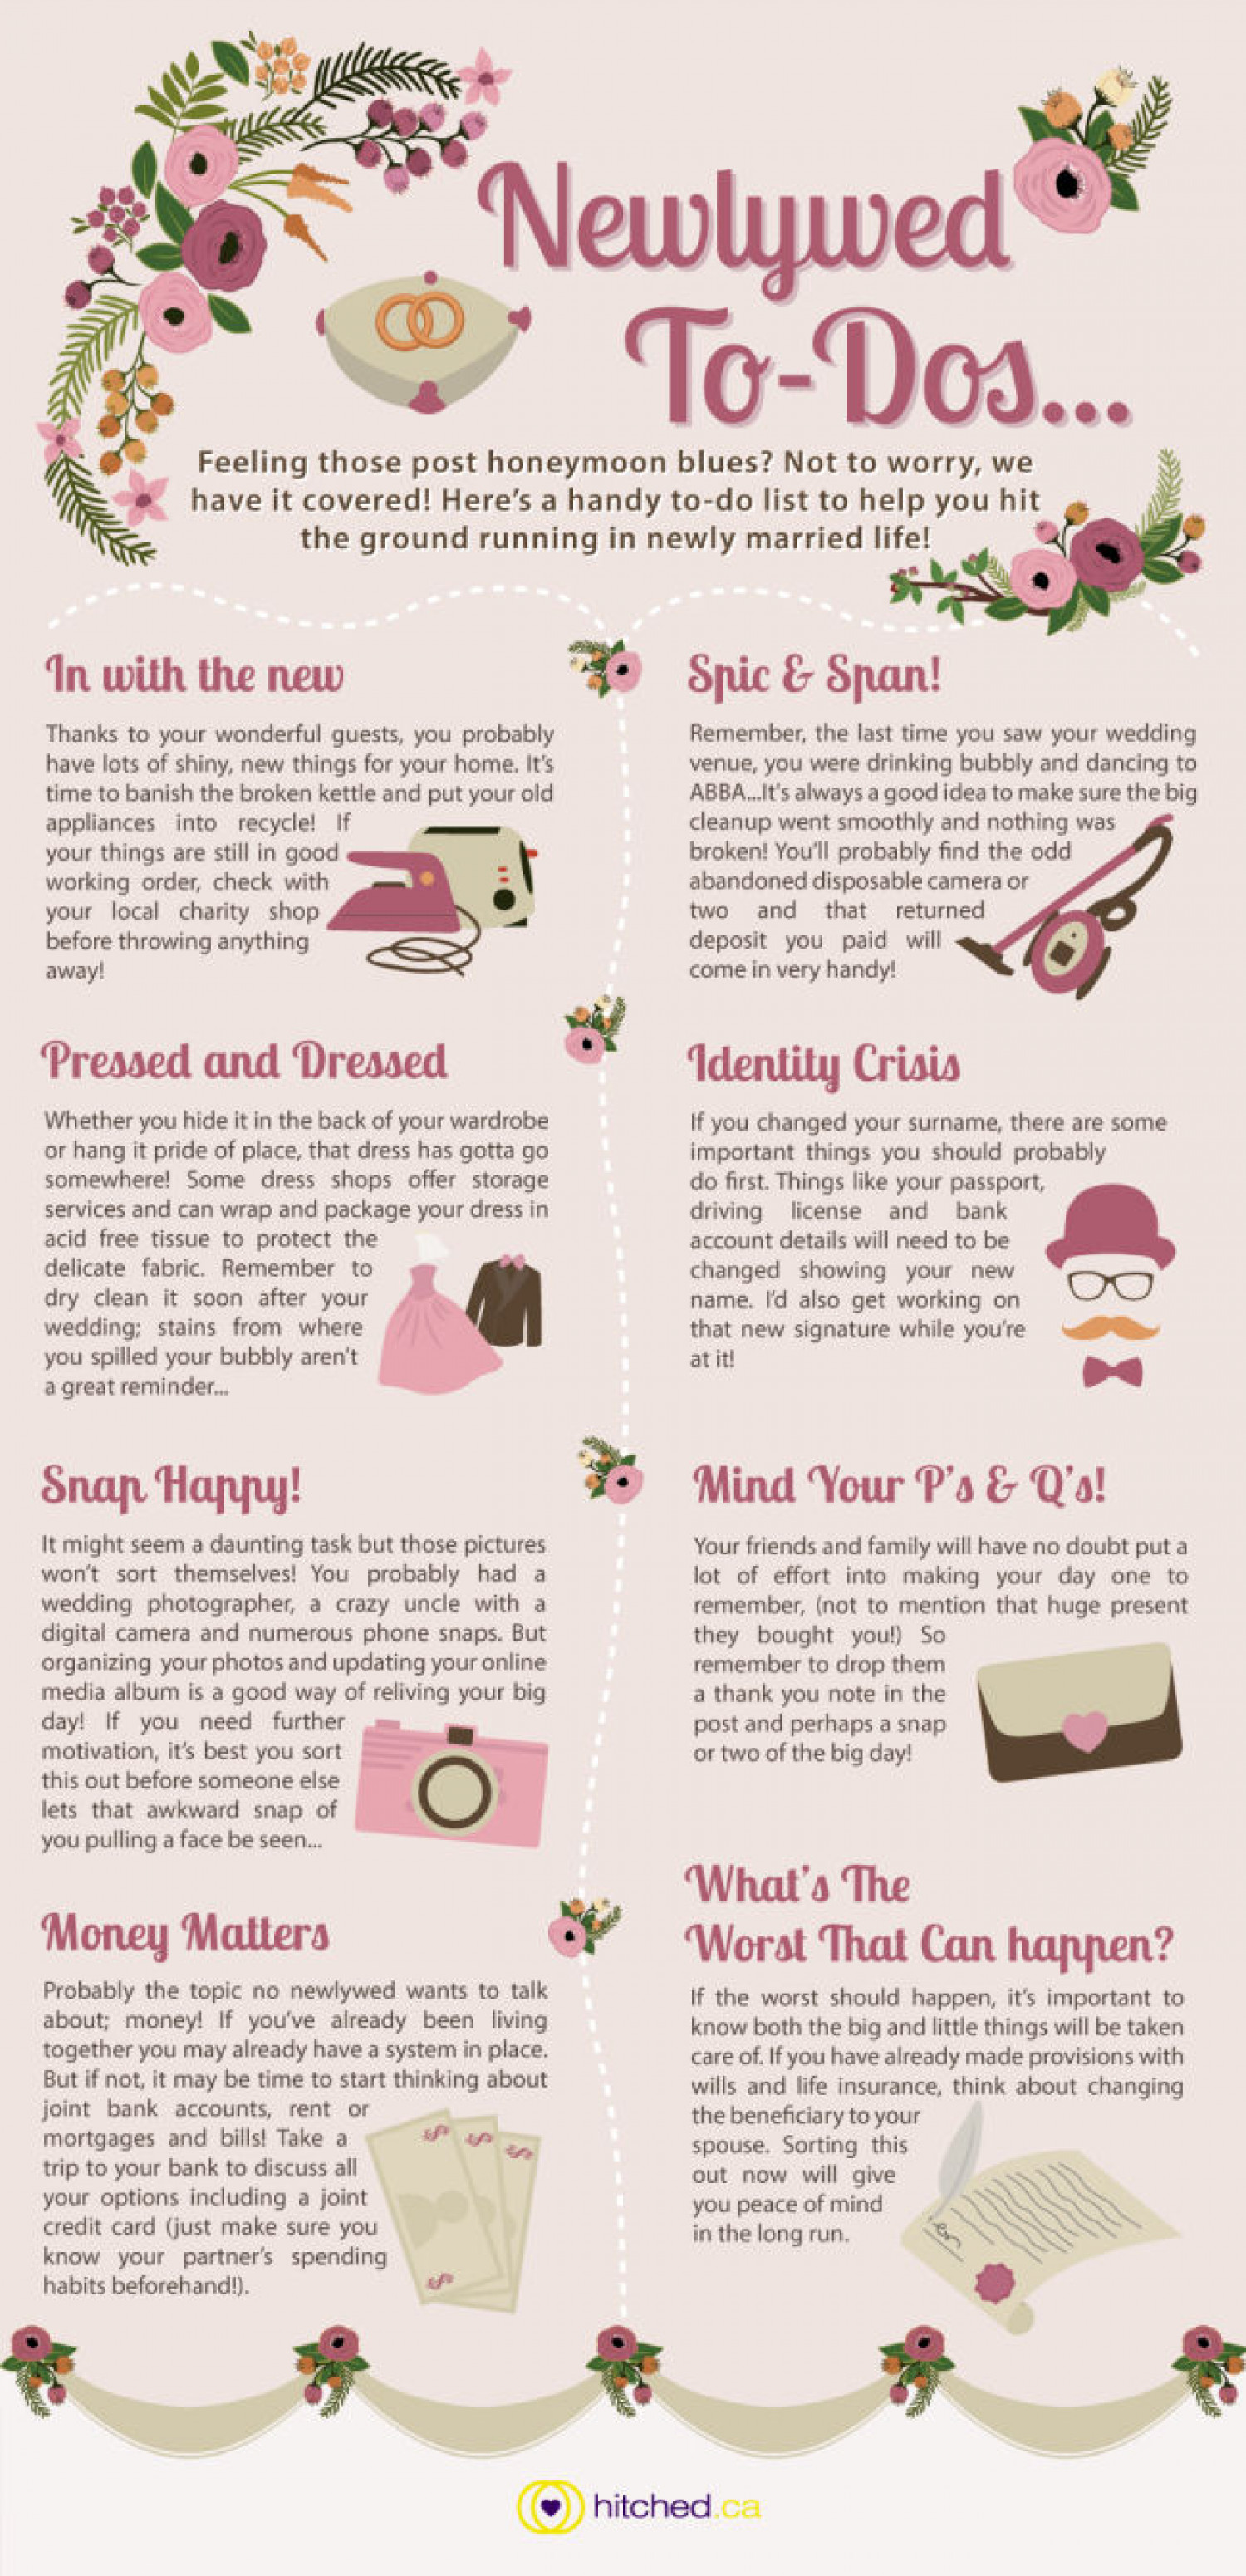 Newly-Wed To Do List Infographic